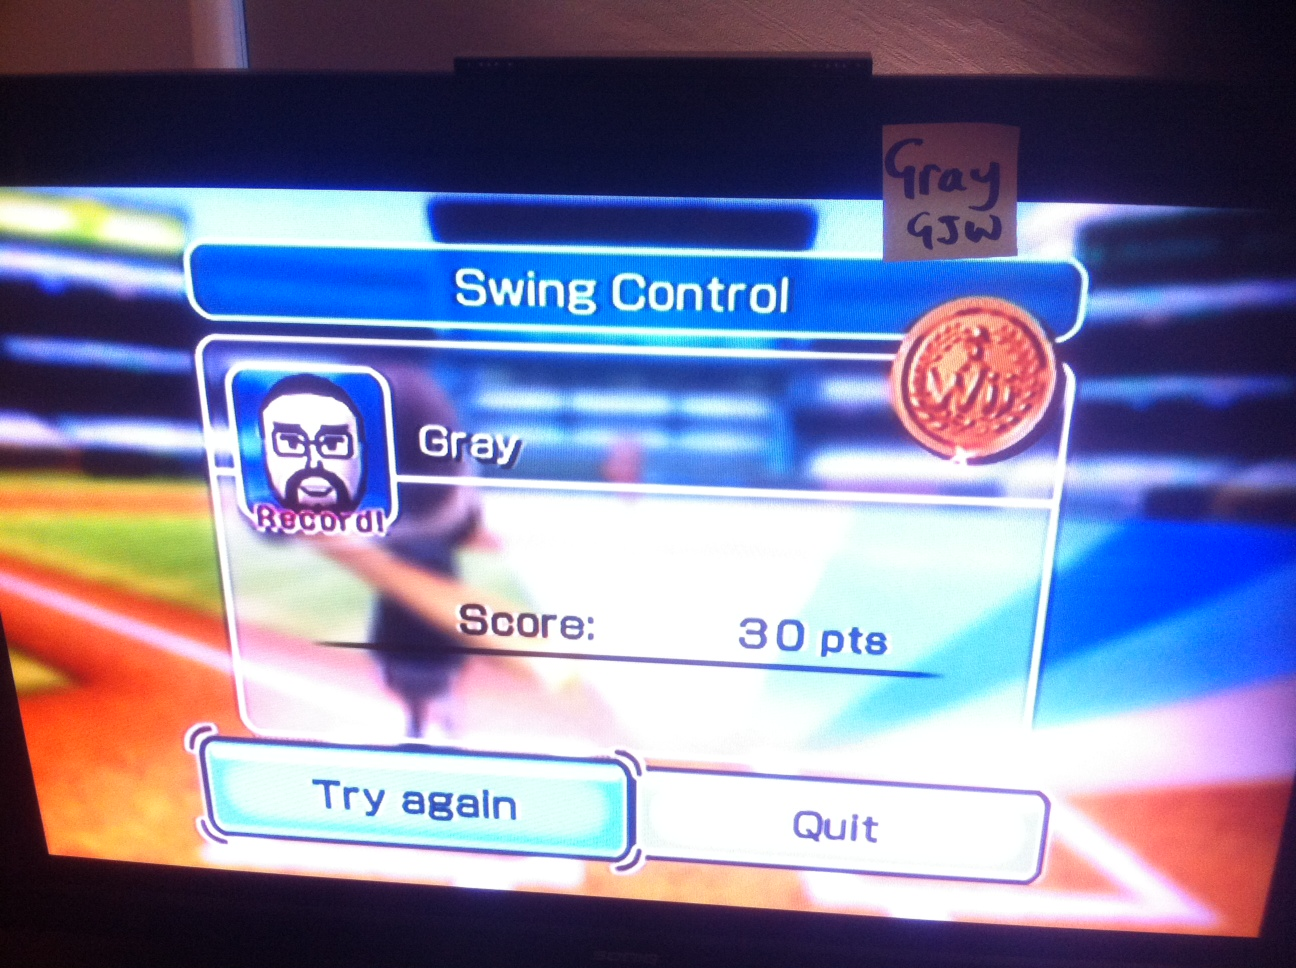 Wii Sports: Baseball [Swing Control] 30 points